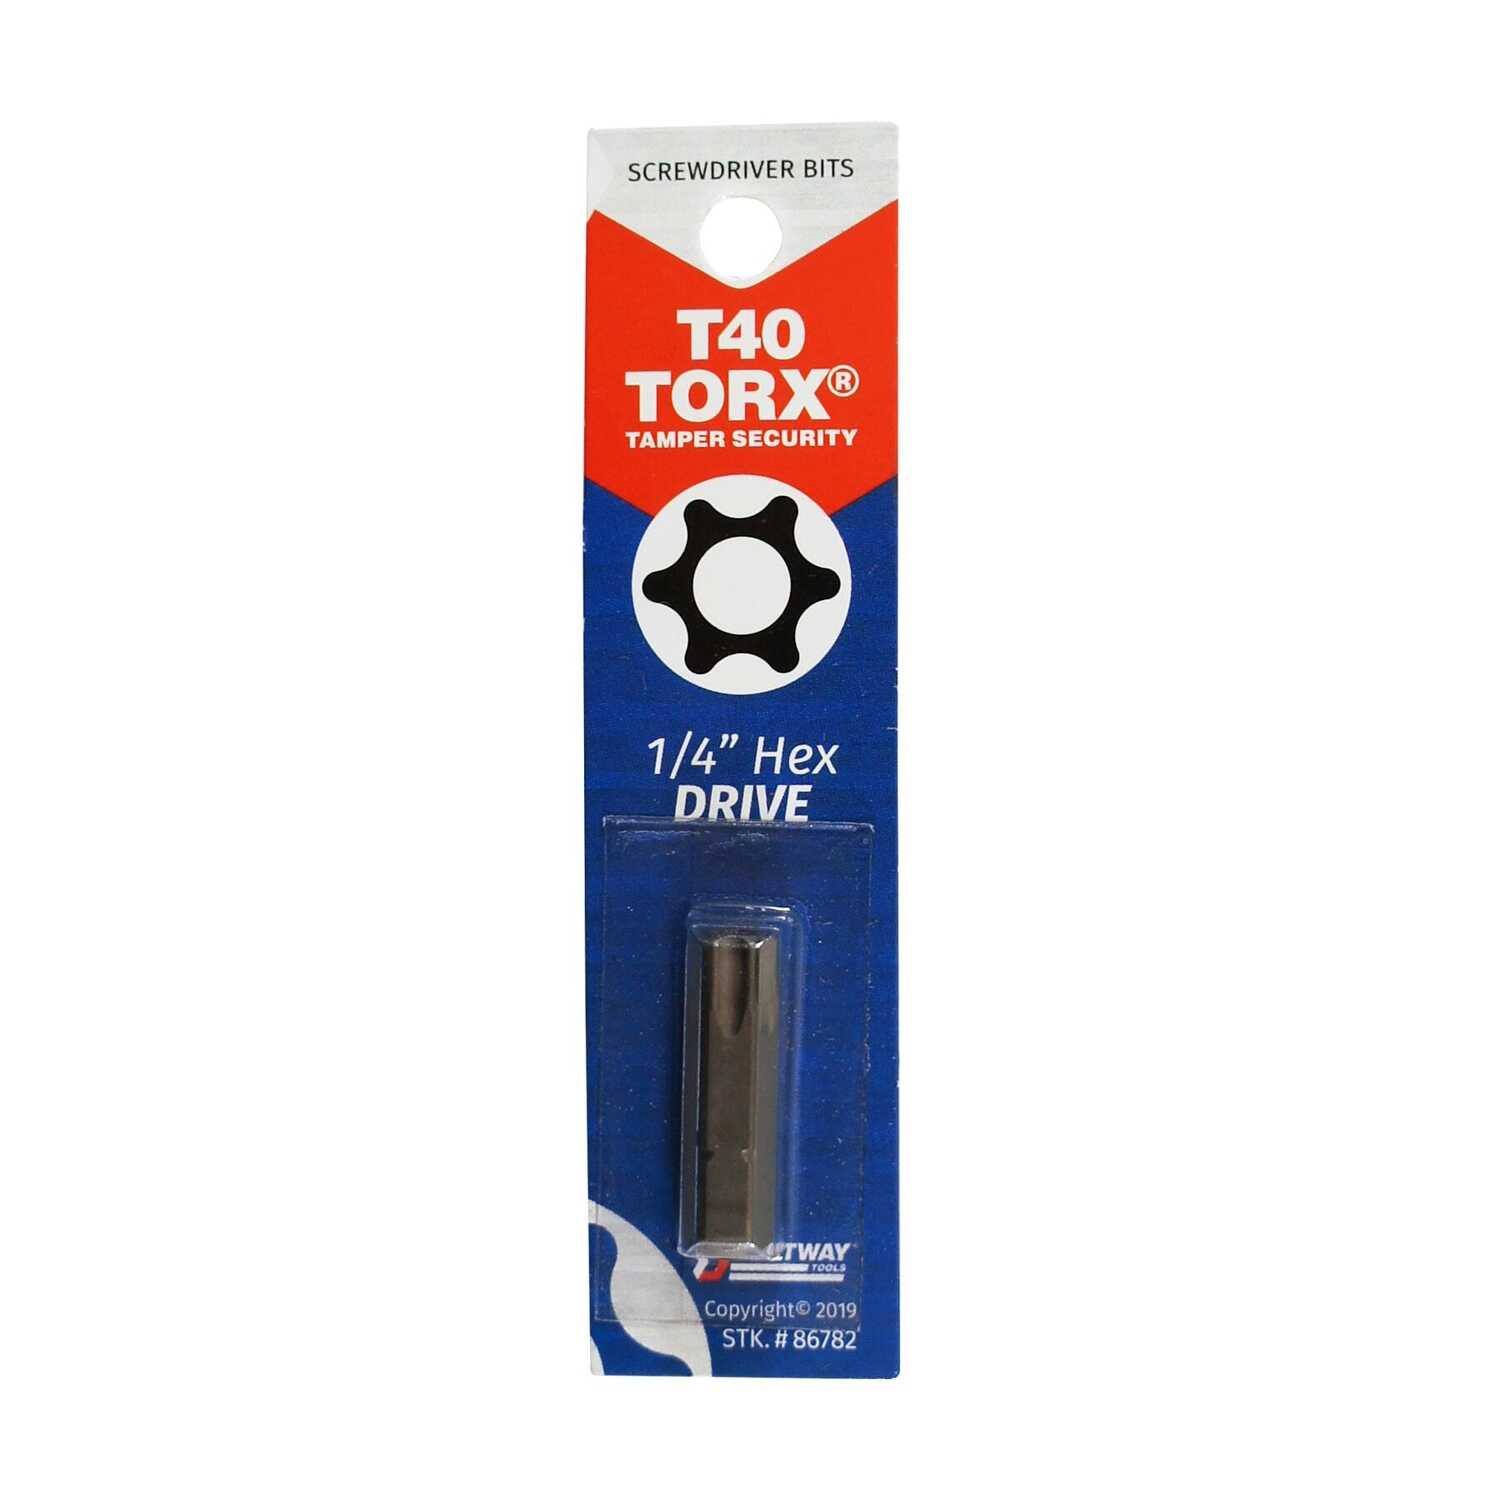 Best Way Tools  Torx  T40   x 1 in. L Screwdriver Bit  Carbon Steel  1 pc.